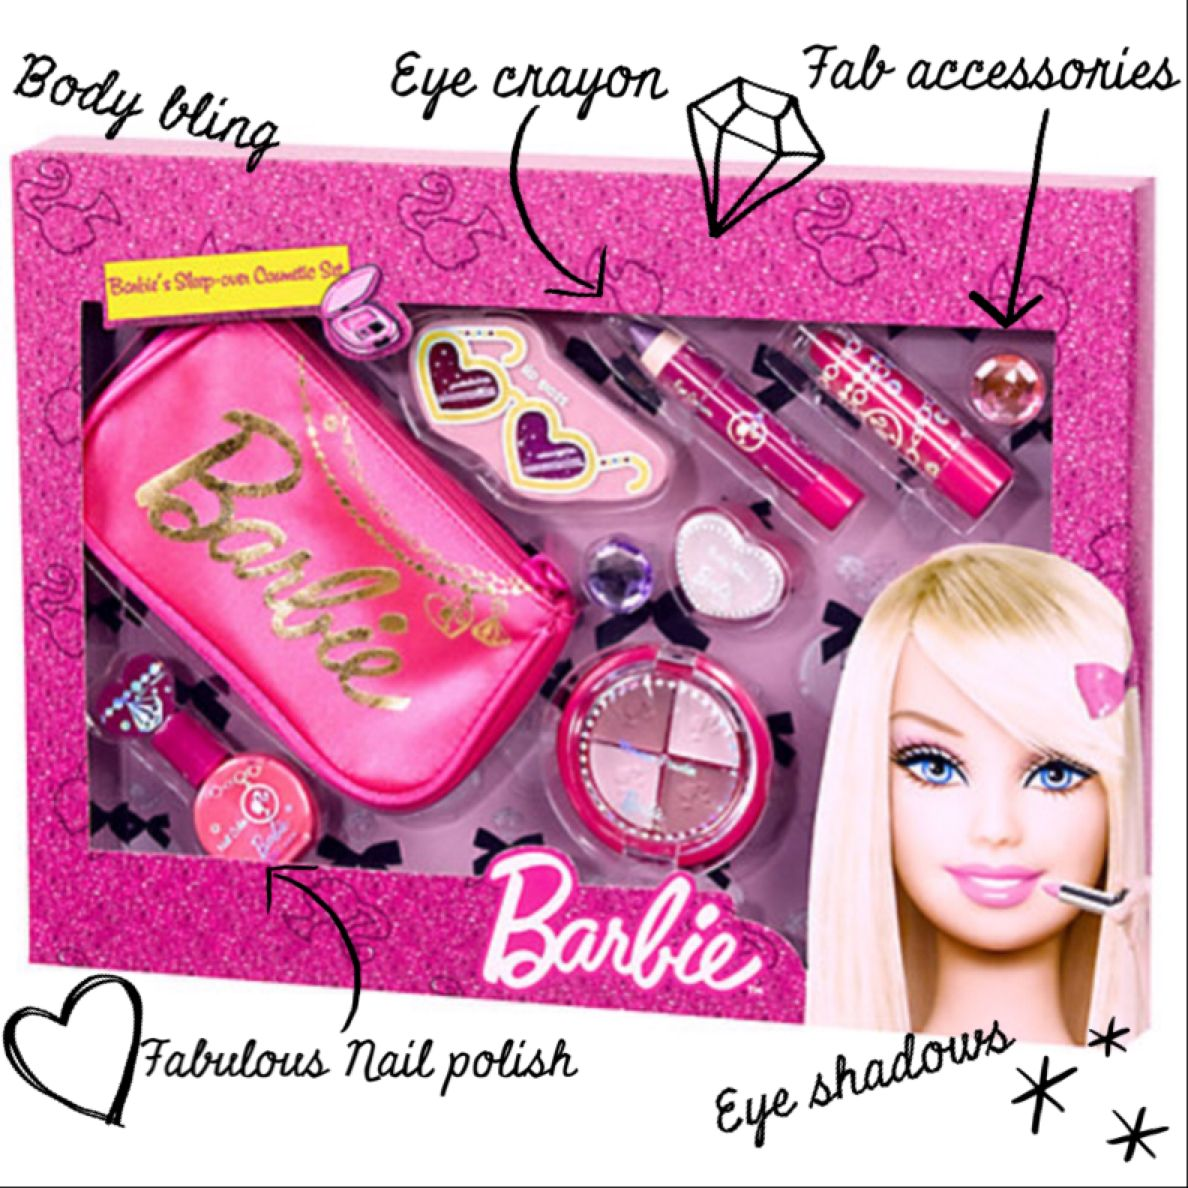 How fabulous is this Sleepver Cosmetic Set?! You can pick